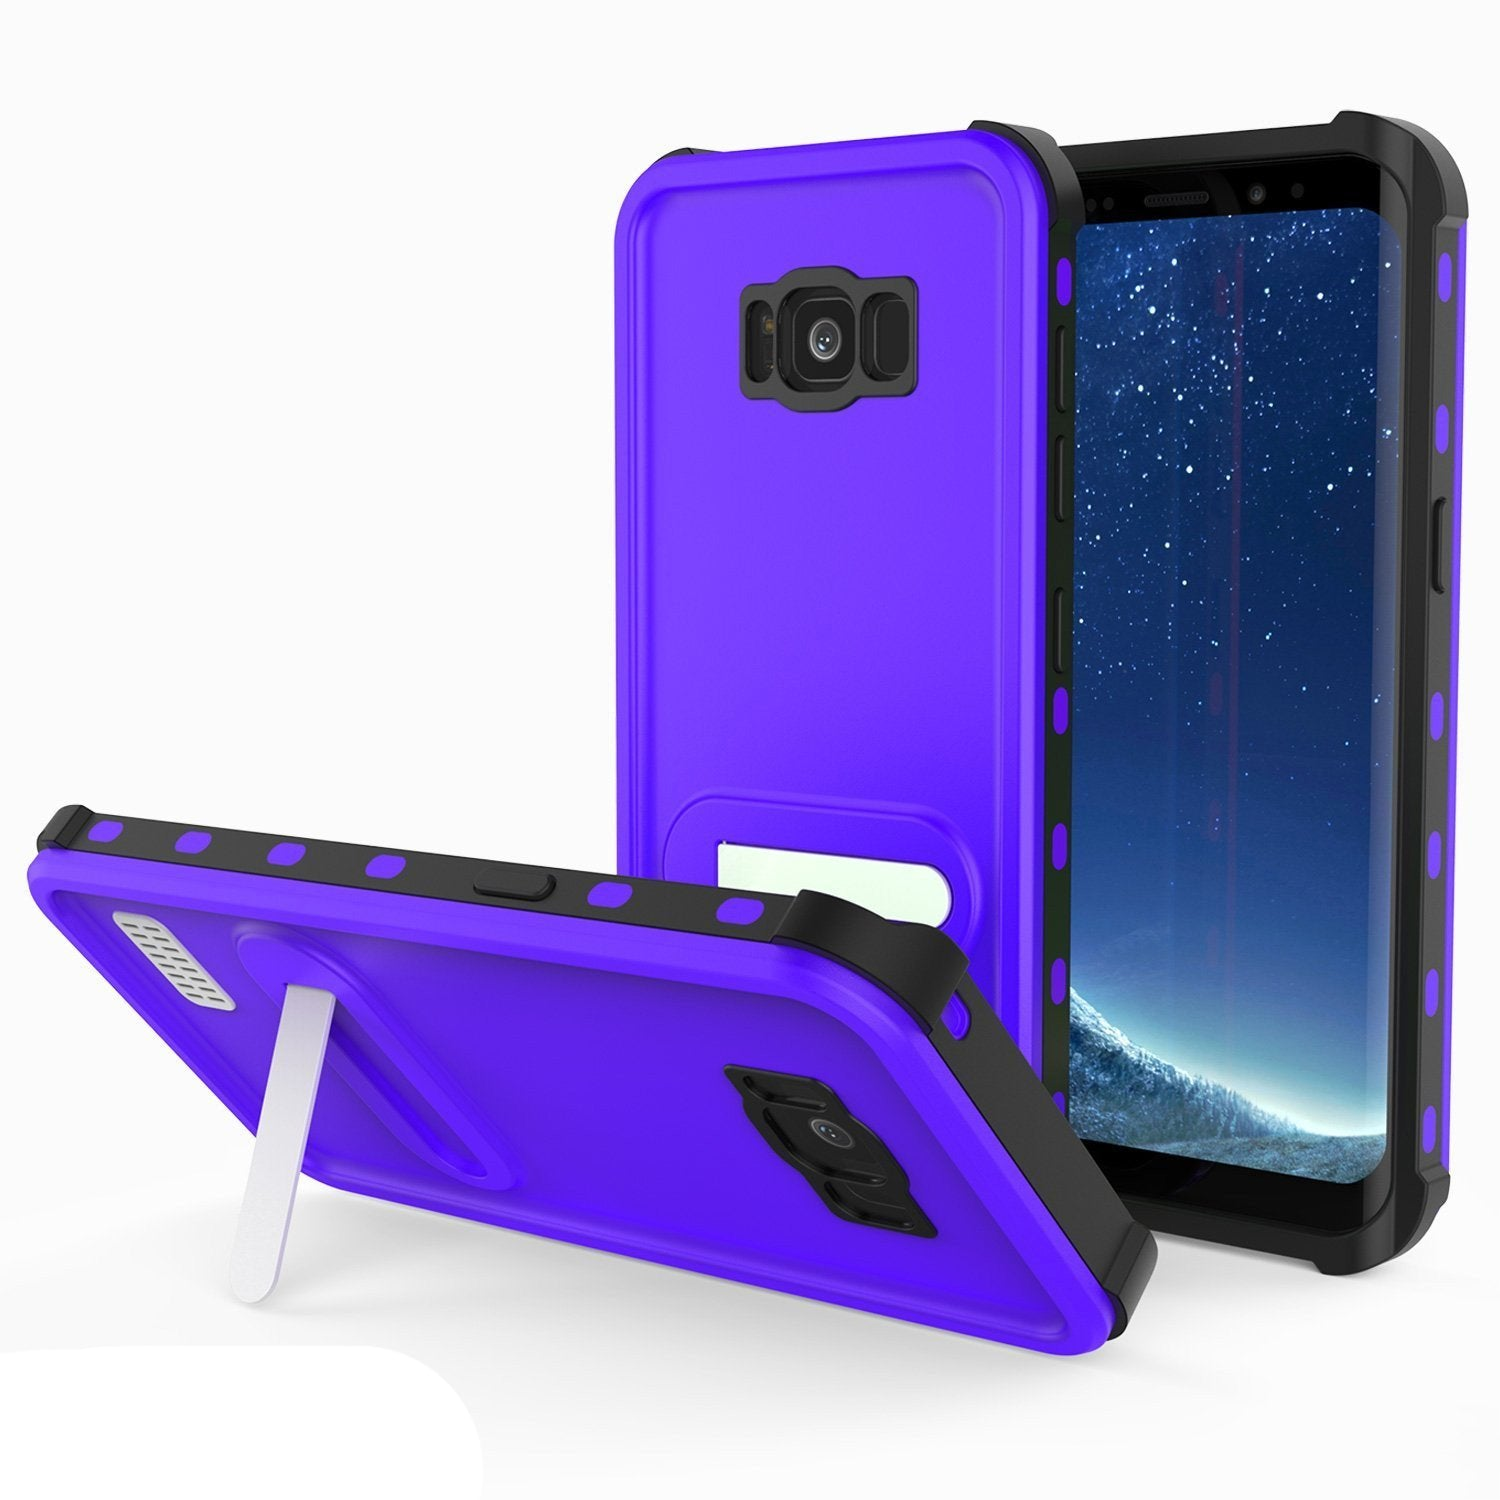 Protector [PURPLE]Galaxy S8 Waterproof Case, Punkcase [KickStud Series] [Slim Fit] [IP68 Certified] [Shockproof] [Snowproof] Armor Cover [PURPLE]